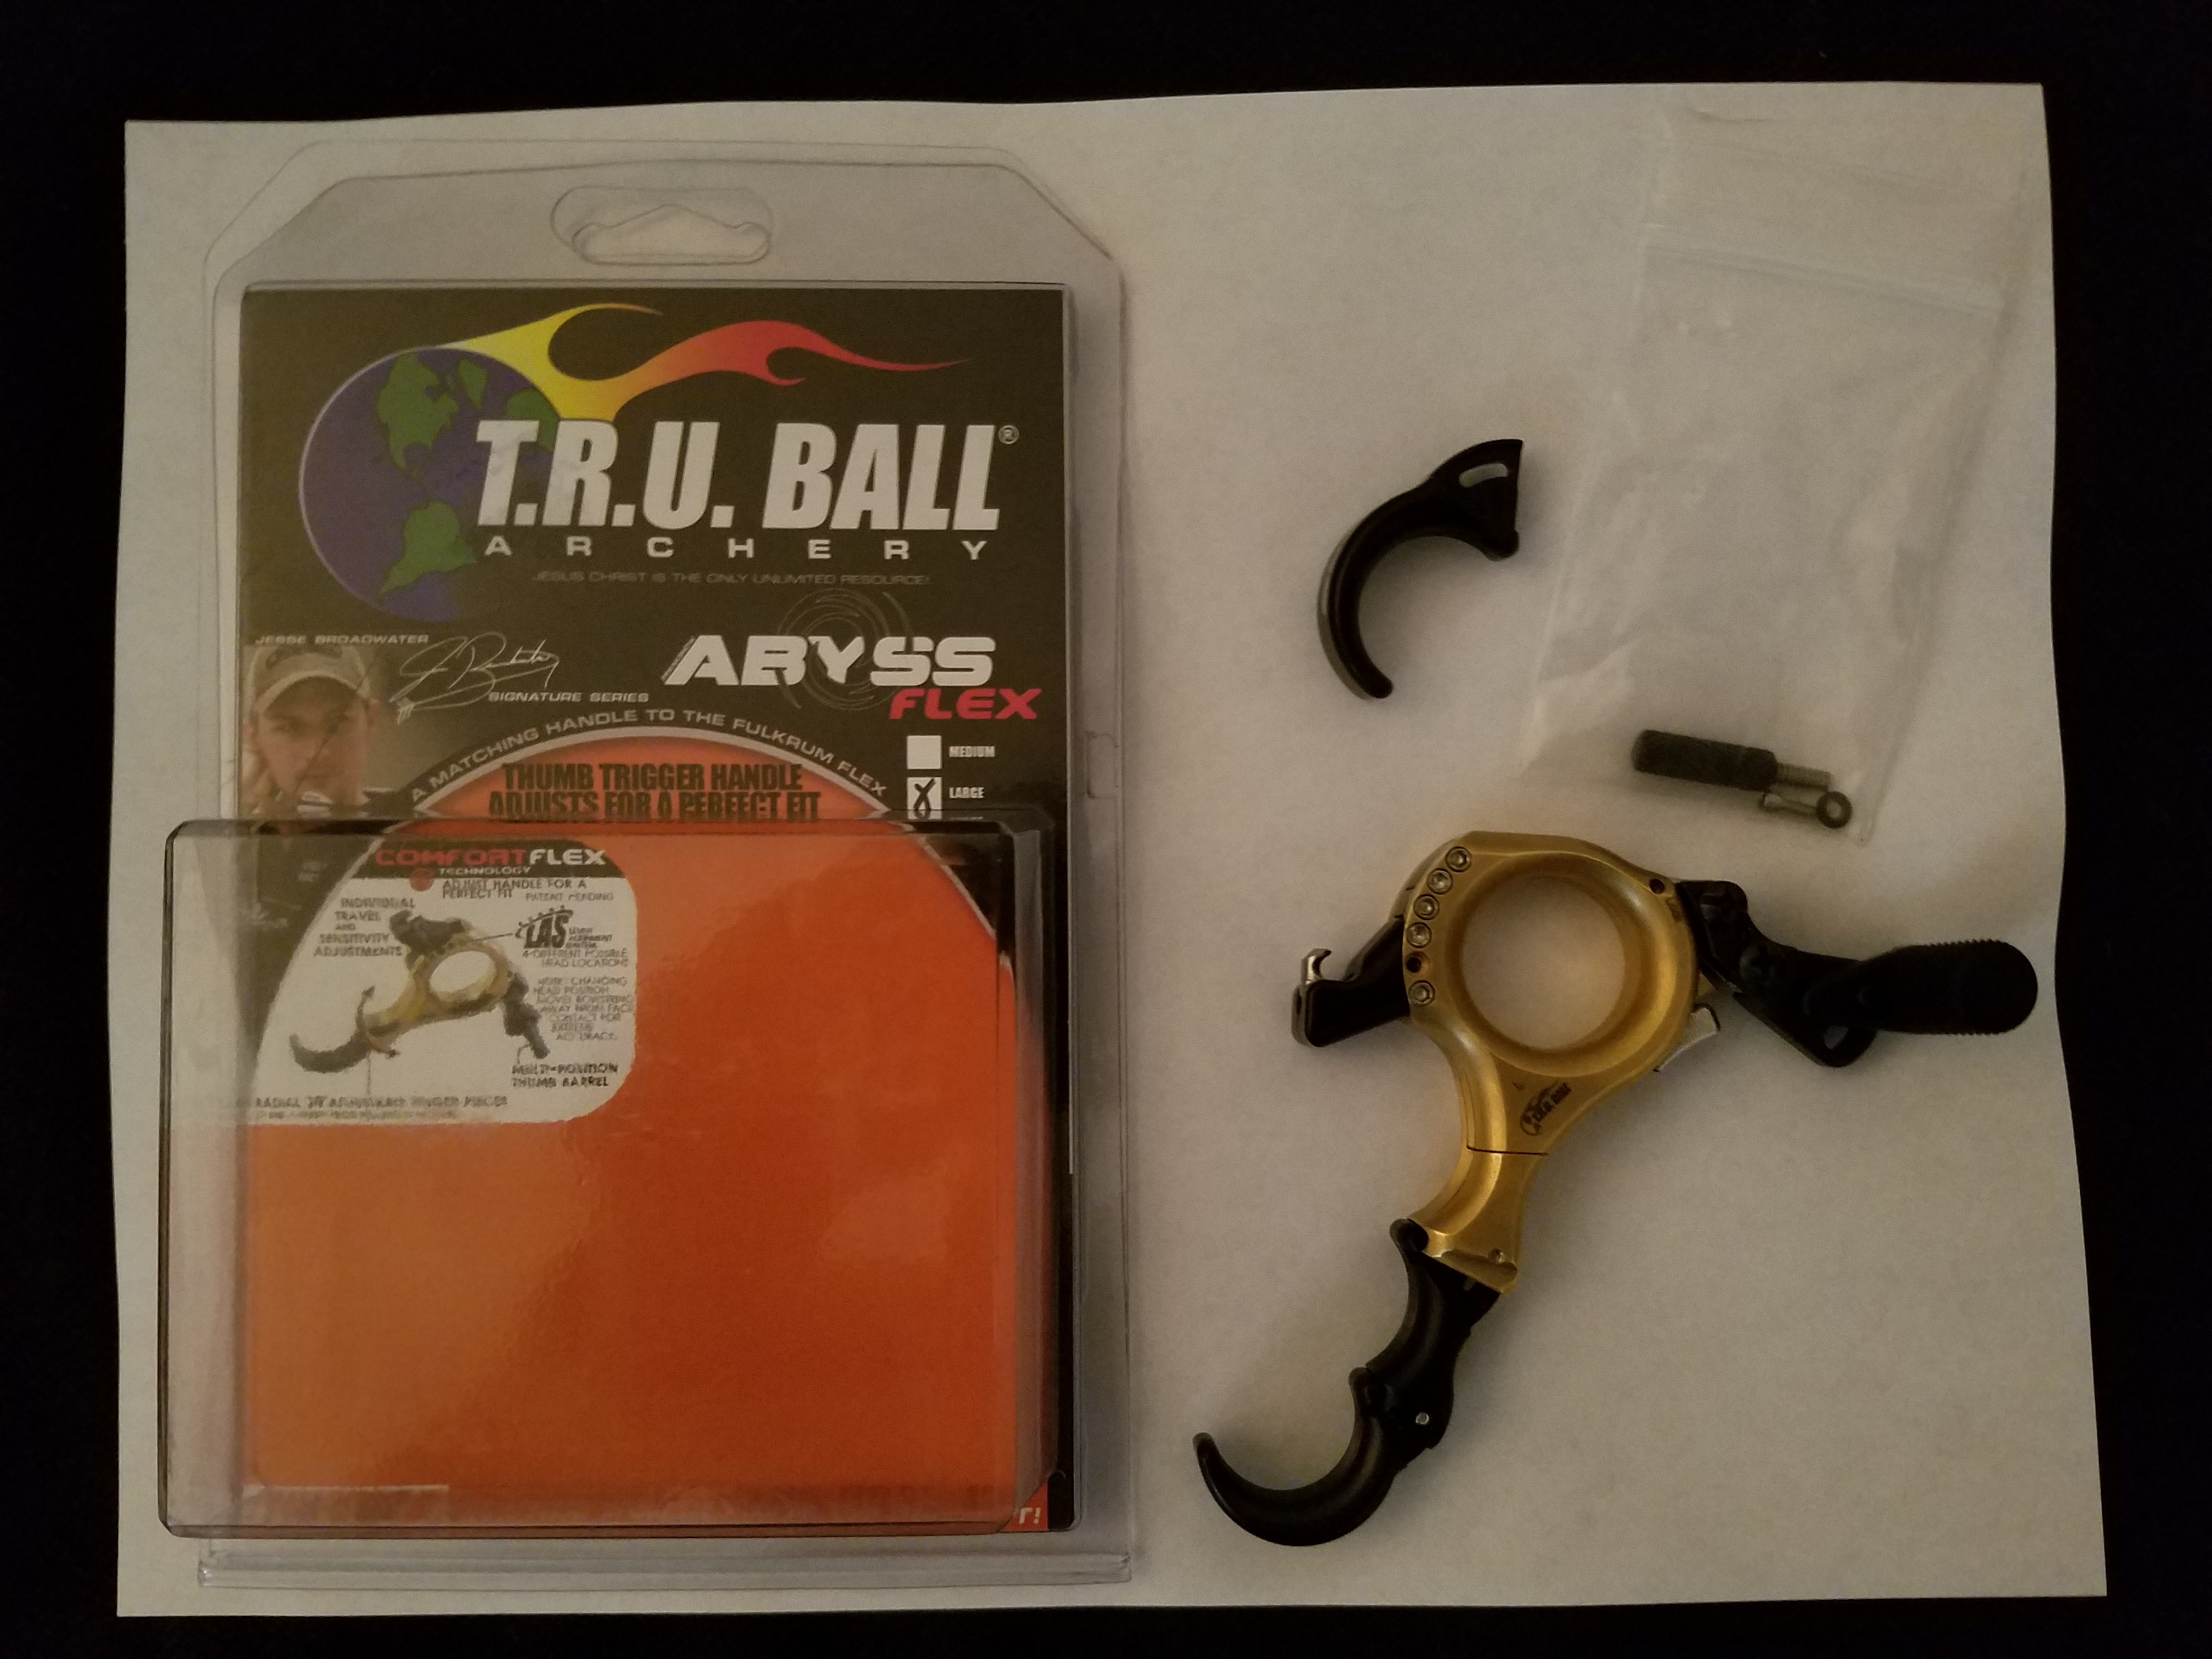 Truball Abyss Flex-Whats in the package